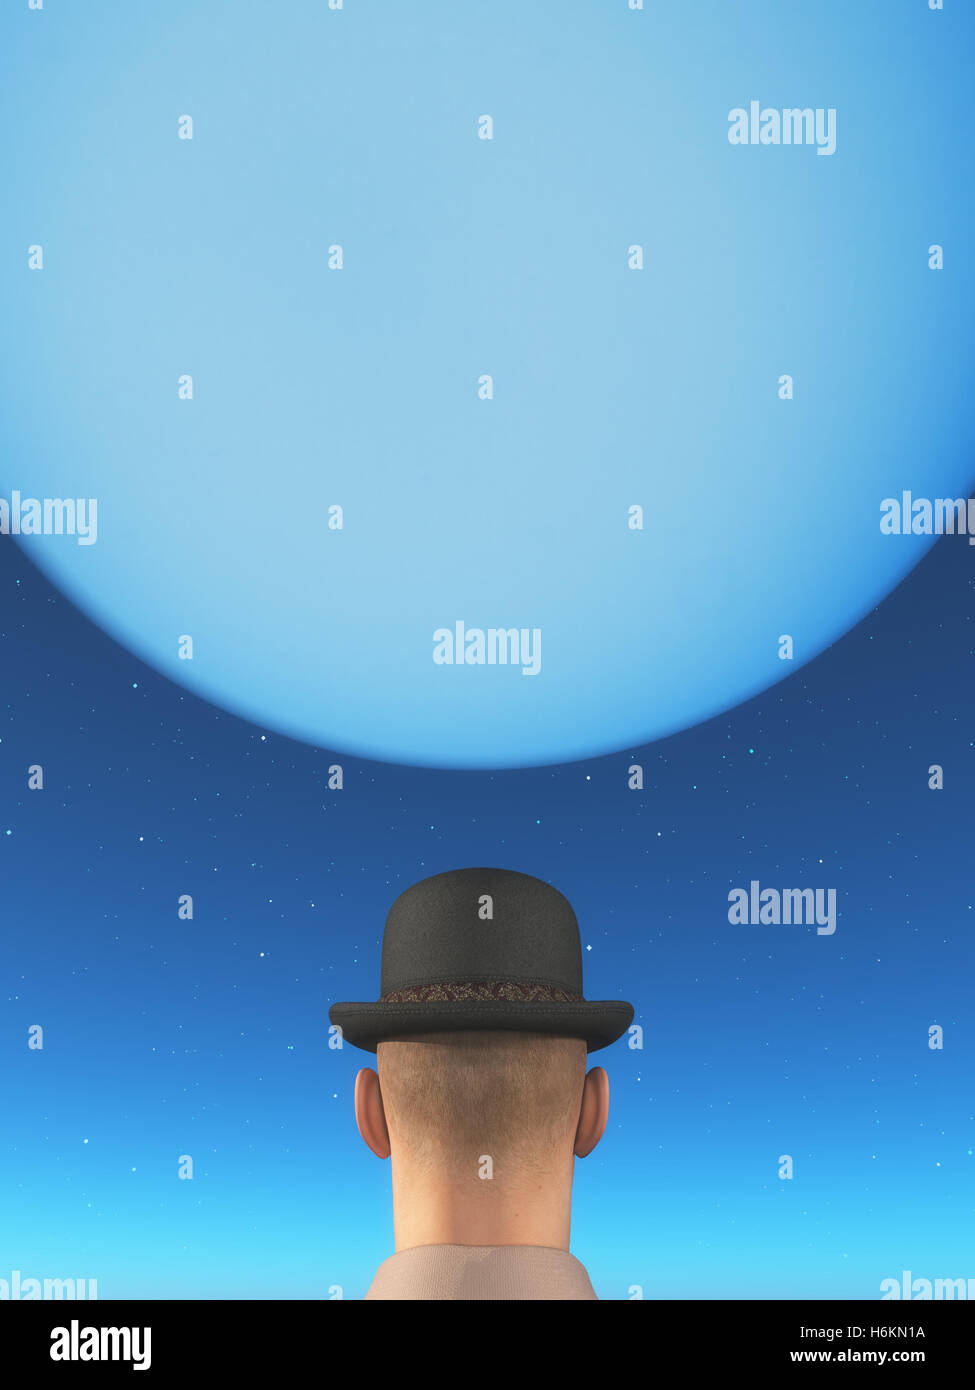 Man wearing a hat and looking to the moon. This is a 3d render illustration - Stock Image